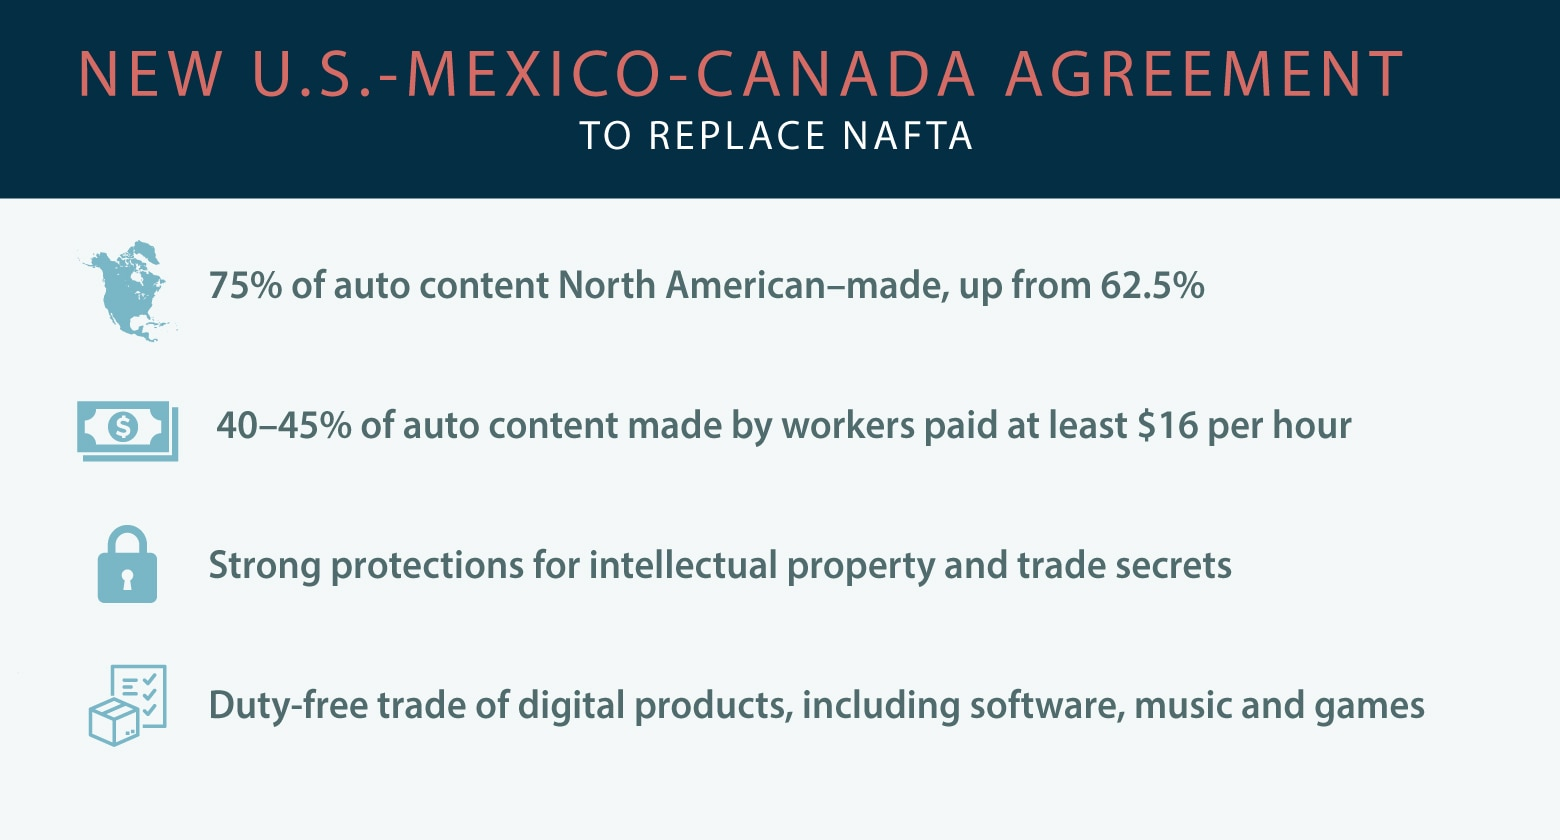 Infographic listing four elements of United States-Mexico-Canada Agreement (State Dept./L. Rawls)